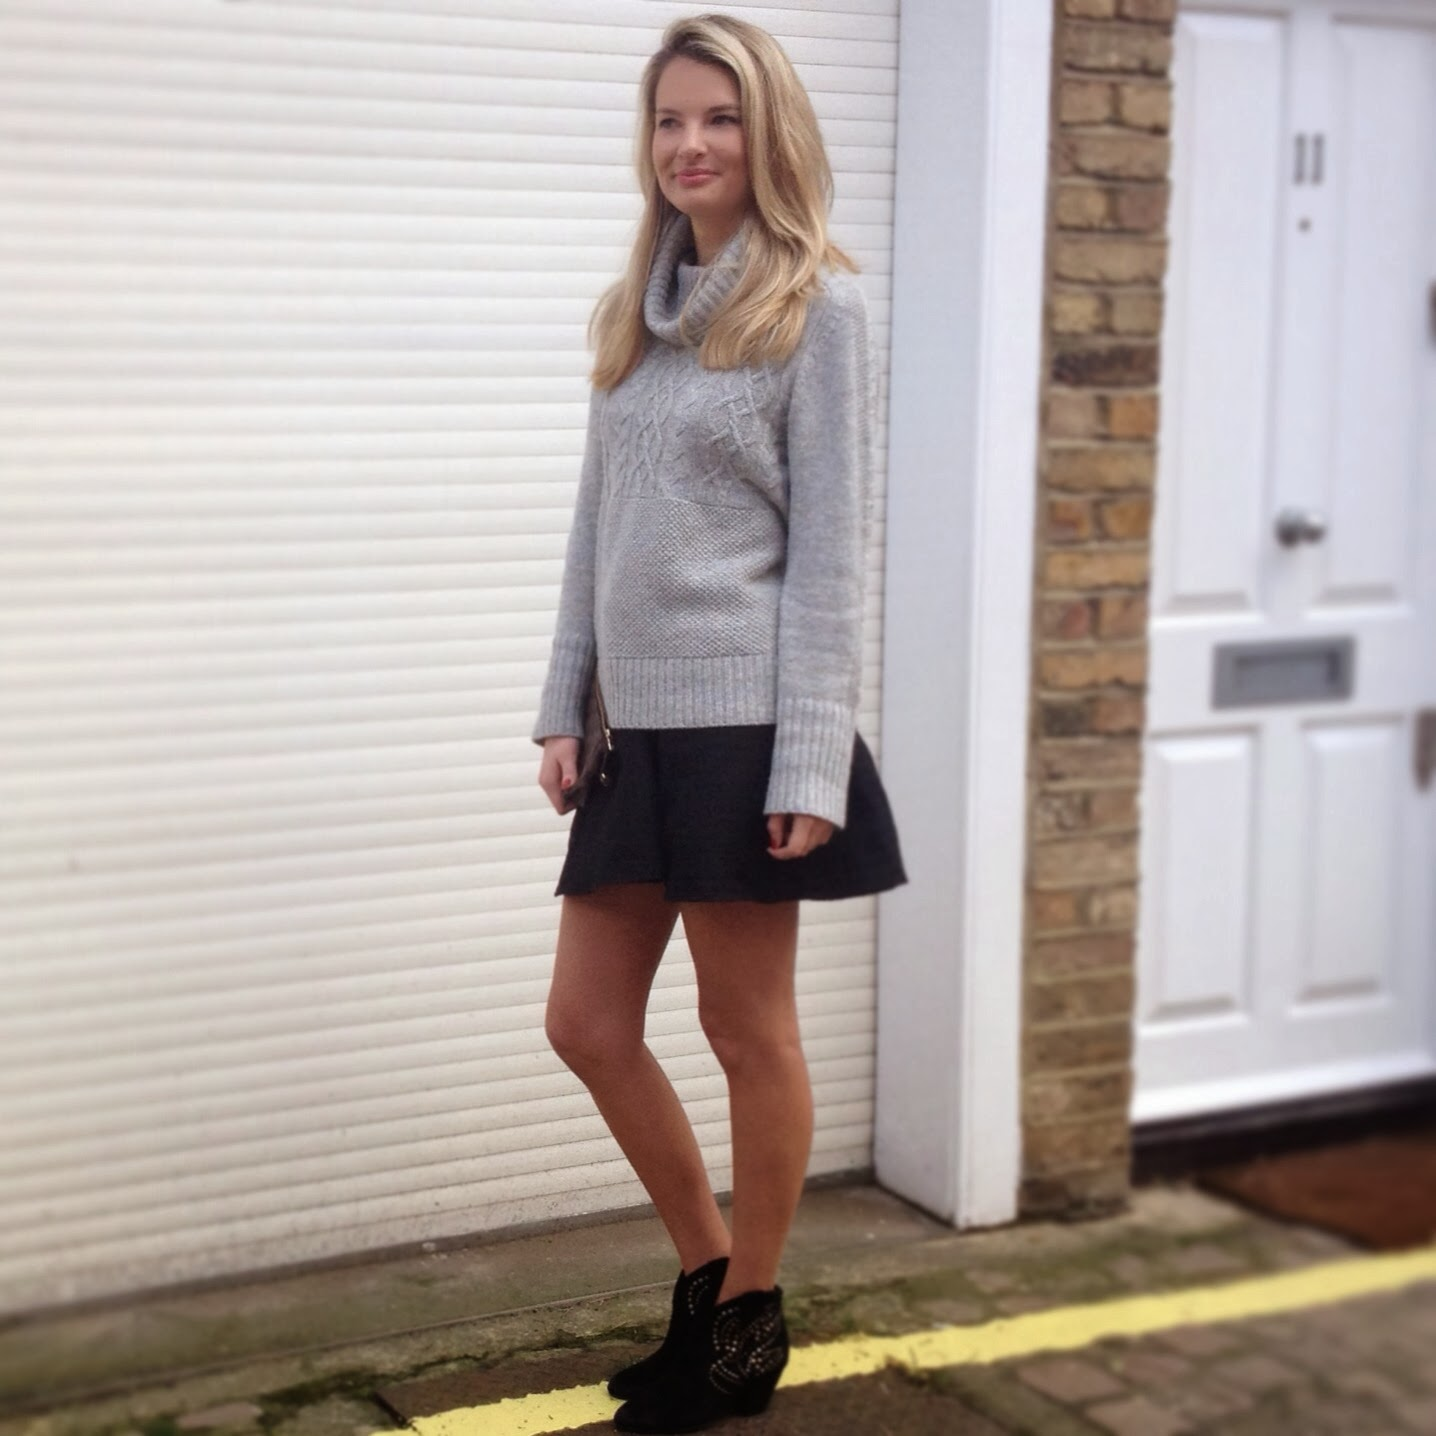 turtleneck jumper, grey jumper, gap jumper, grey gap jumper, knitted jumper, grey knitted jumper, jumper and skirt, knitted jumper and skirt, skater skirt, asos skirt, asos skater skirt, skirt and booties, ash booties, black booties, black booties and skirt, flared skirt, short skirt, black short skirt